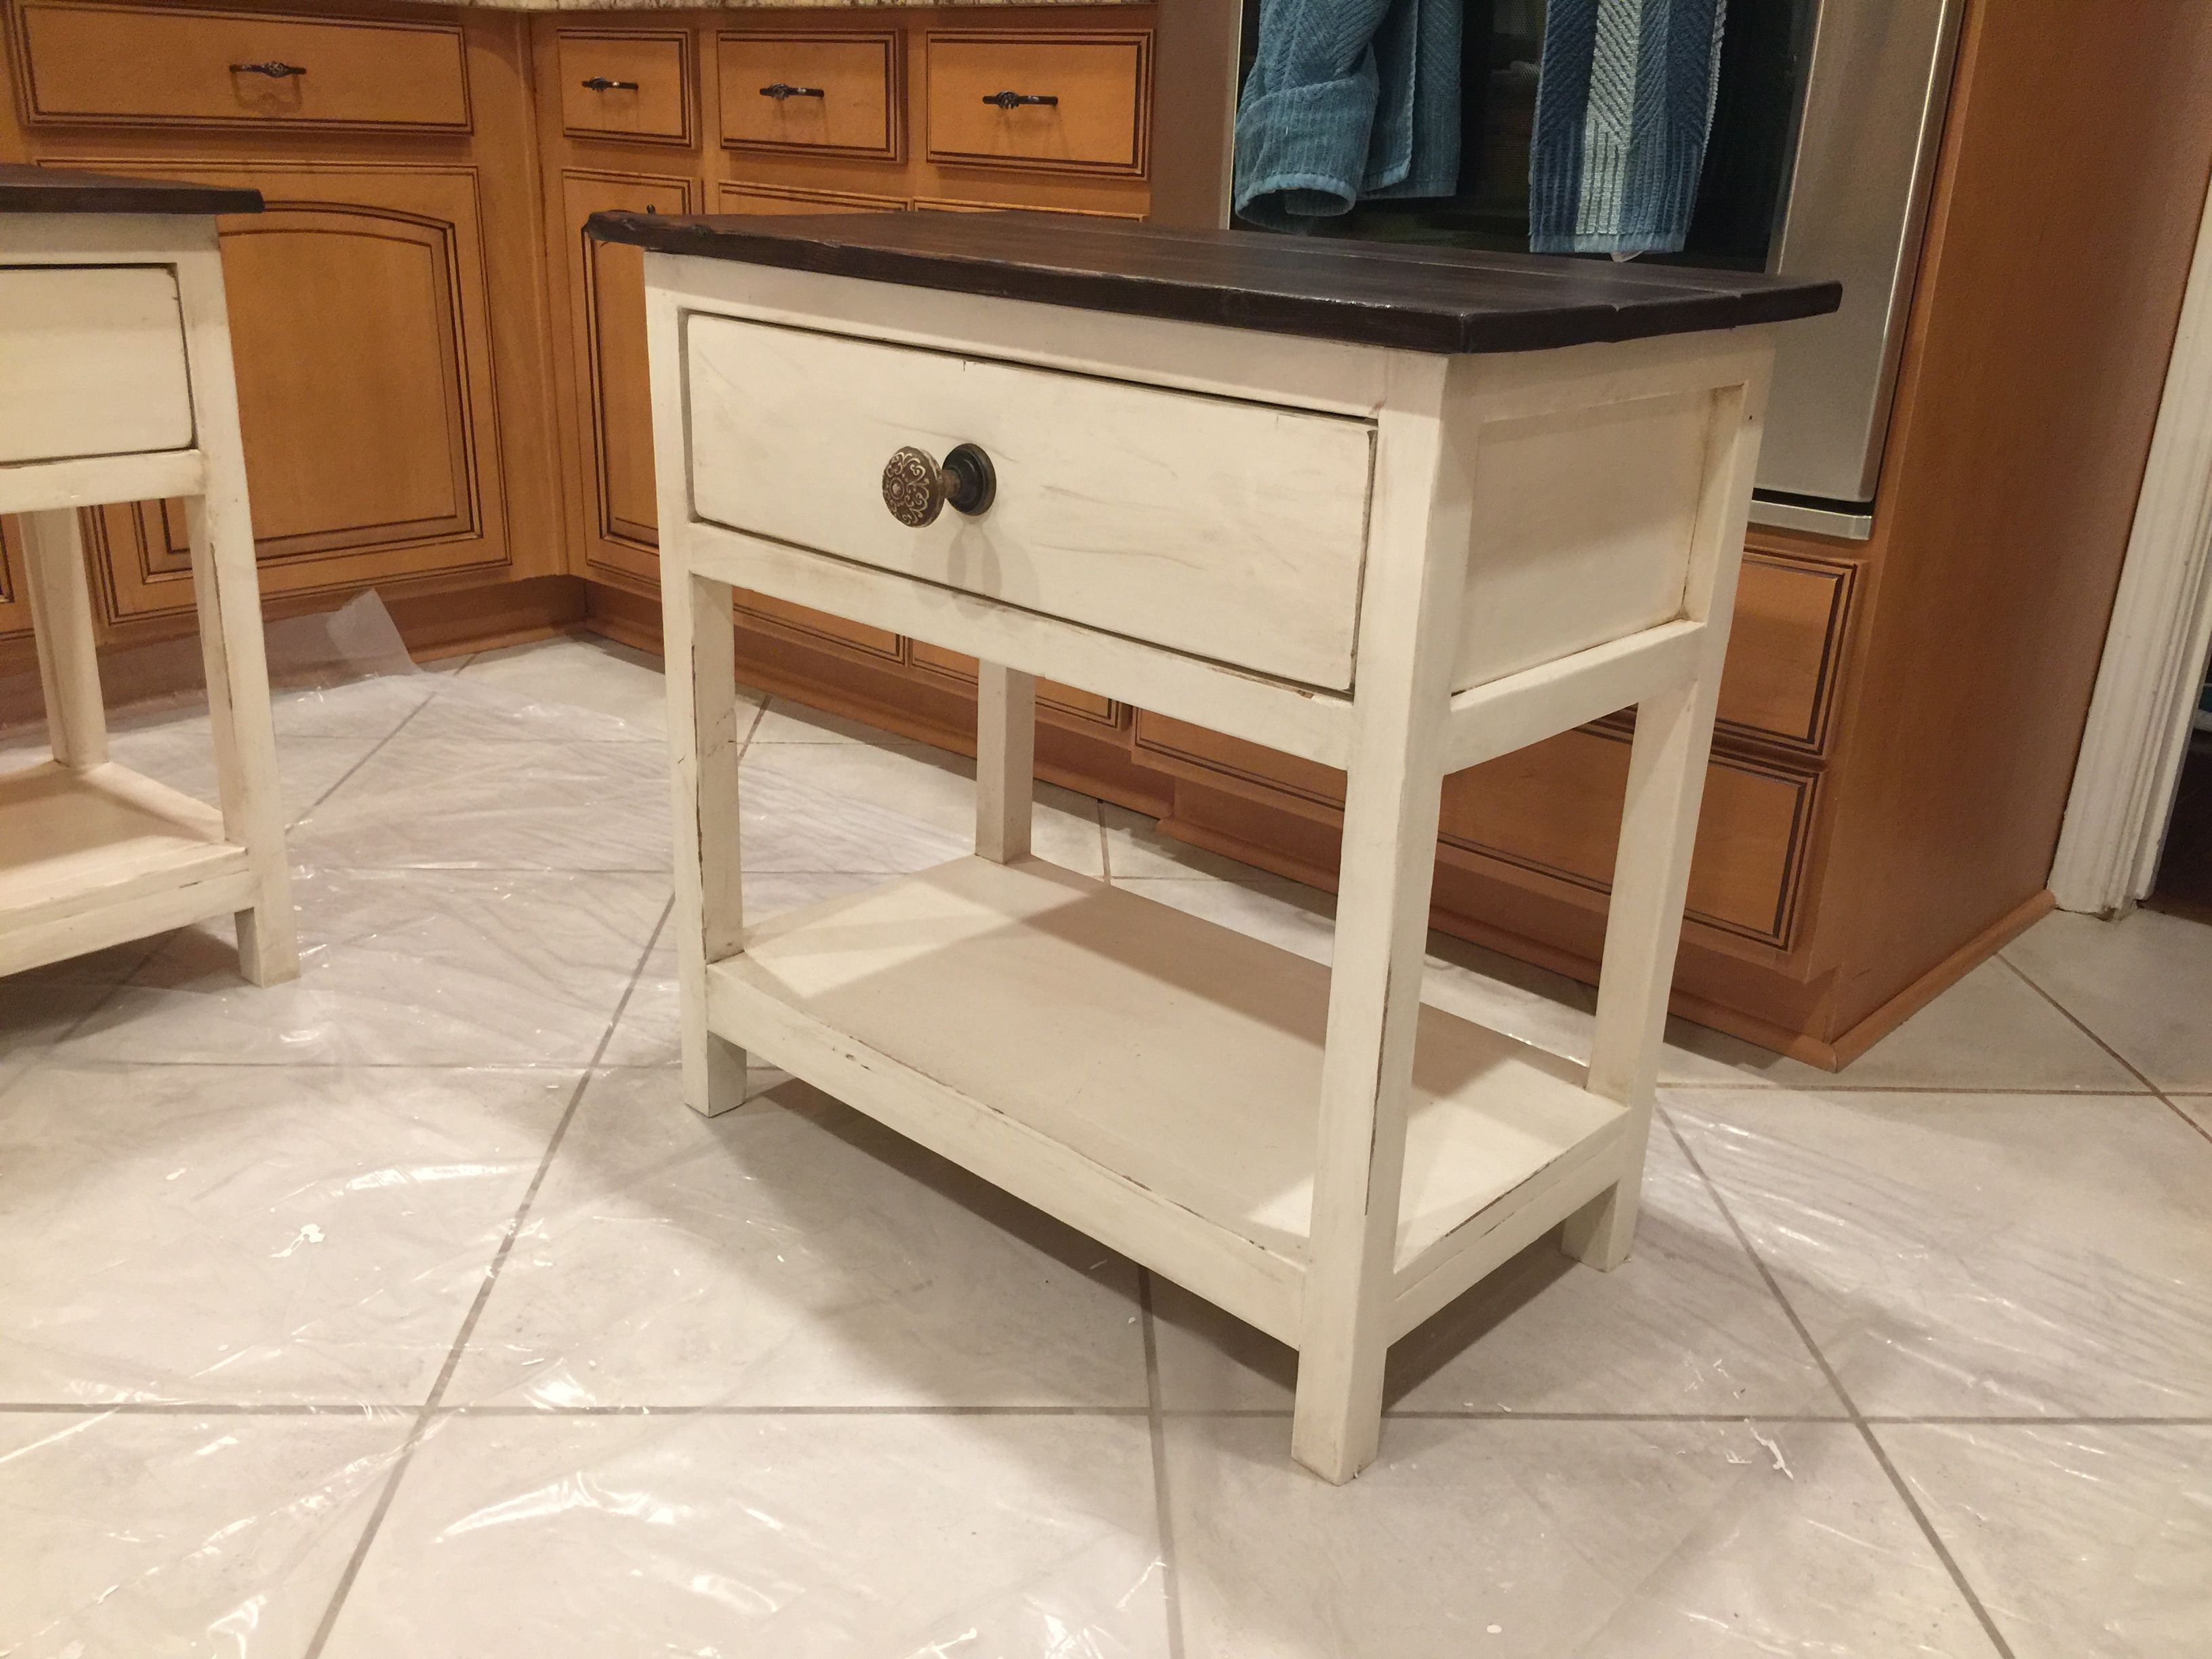 Farmhouse Nightstand From Ana White Plans Farmhouse Nightstand Ana White Plans Entryway Tables